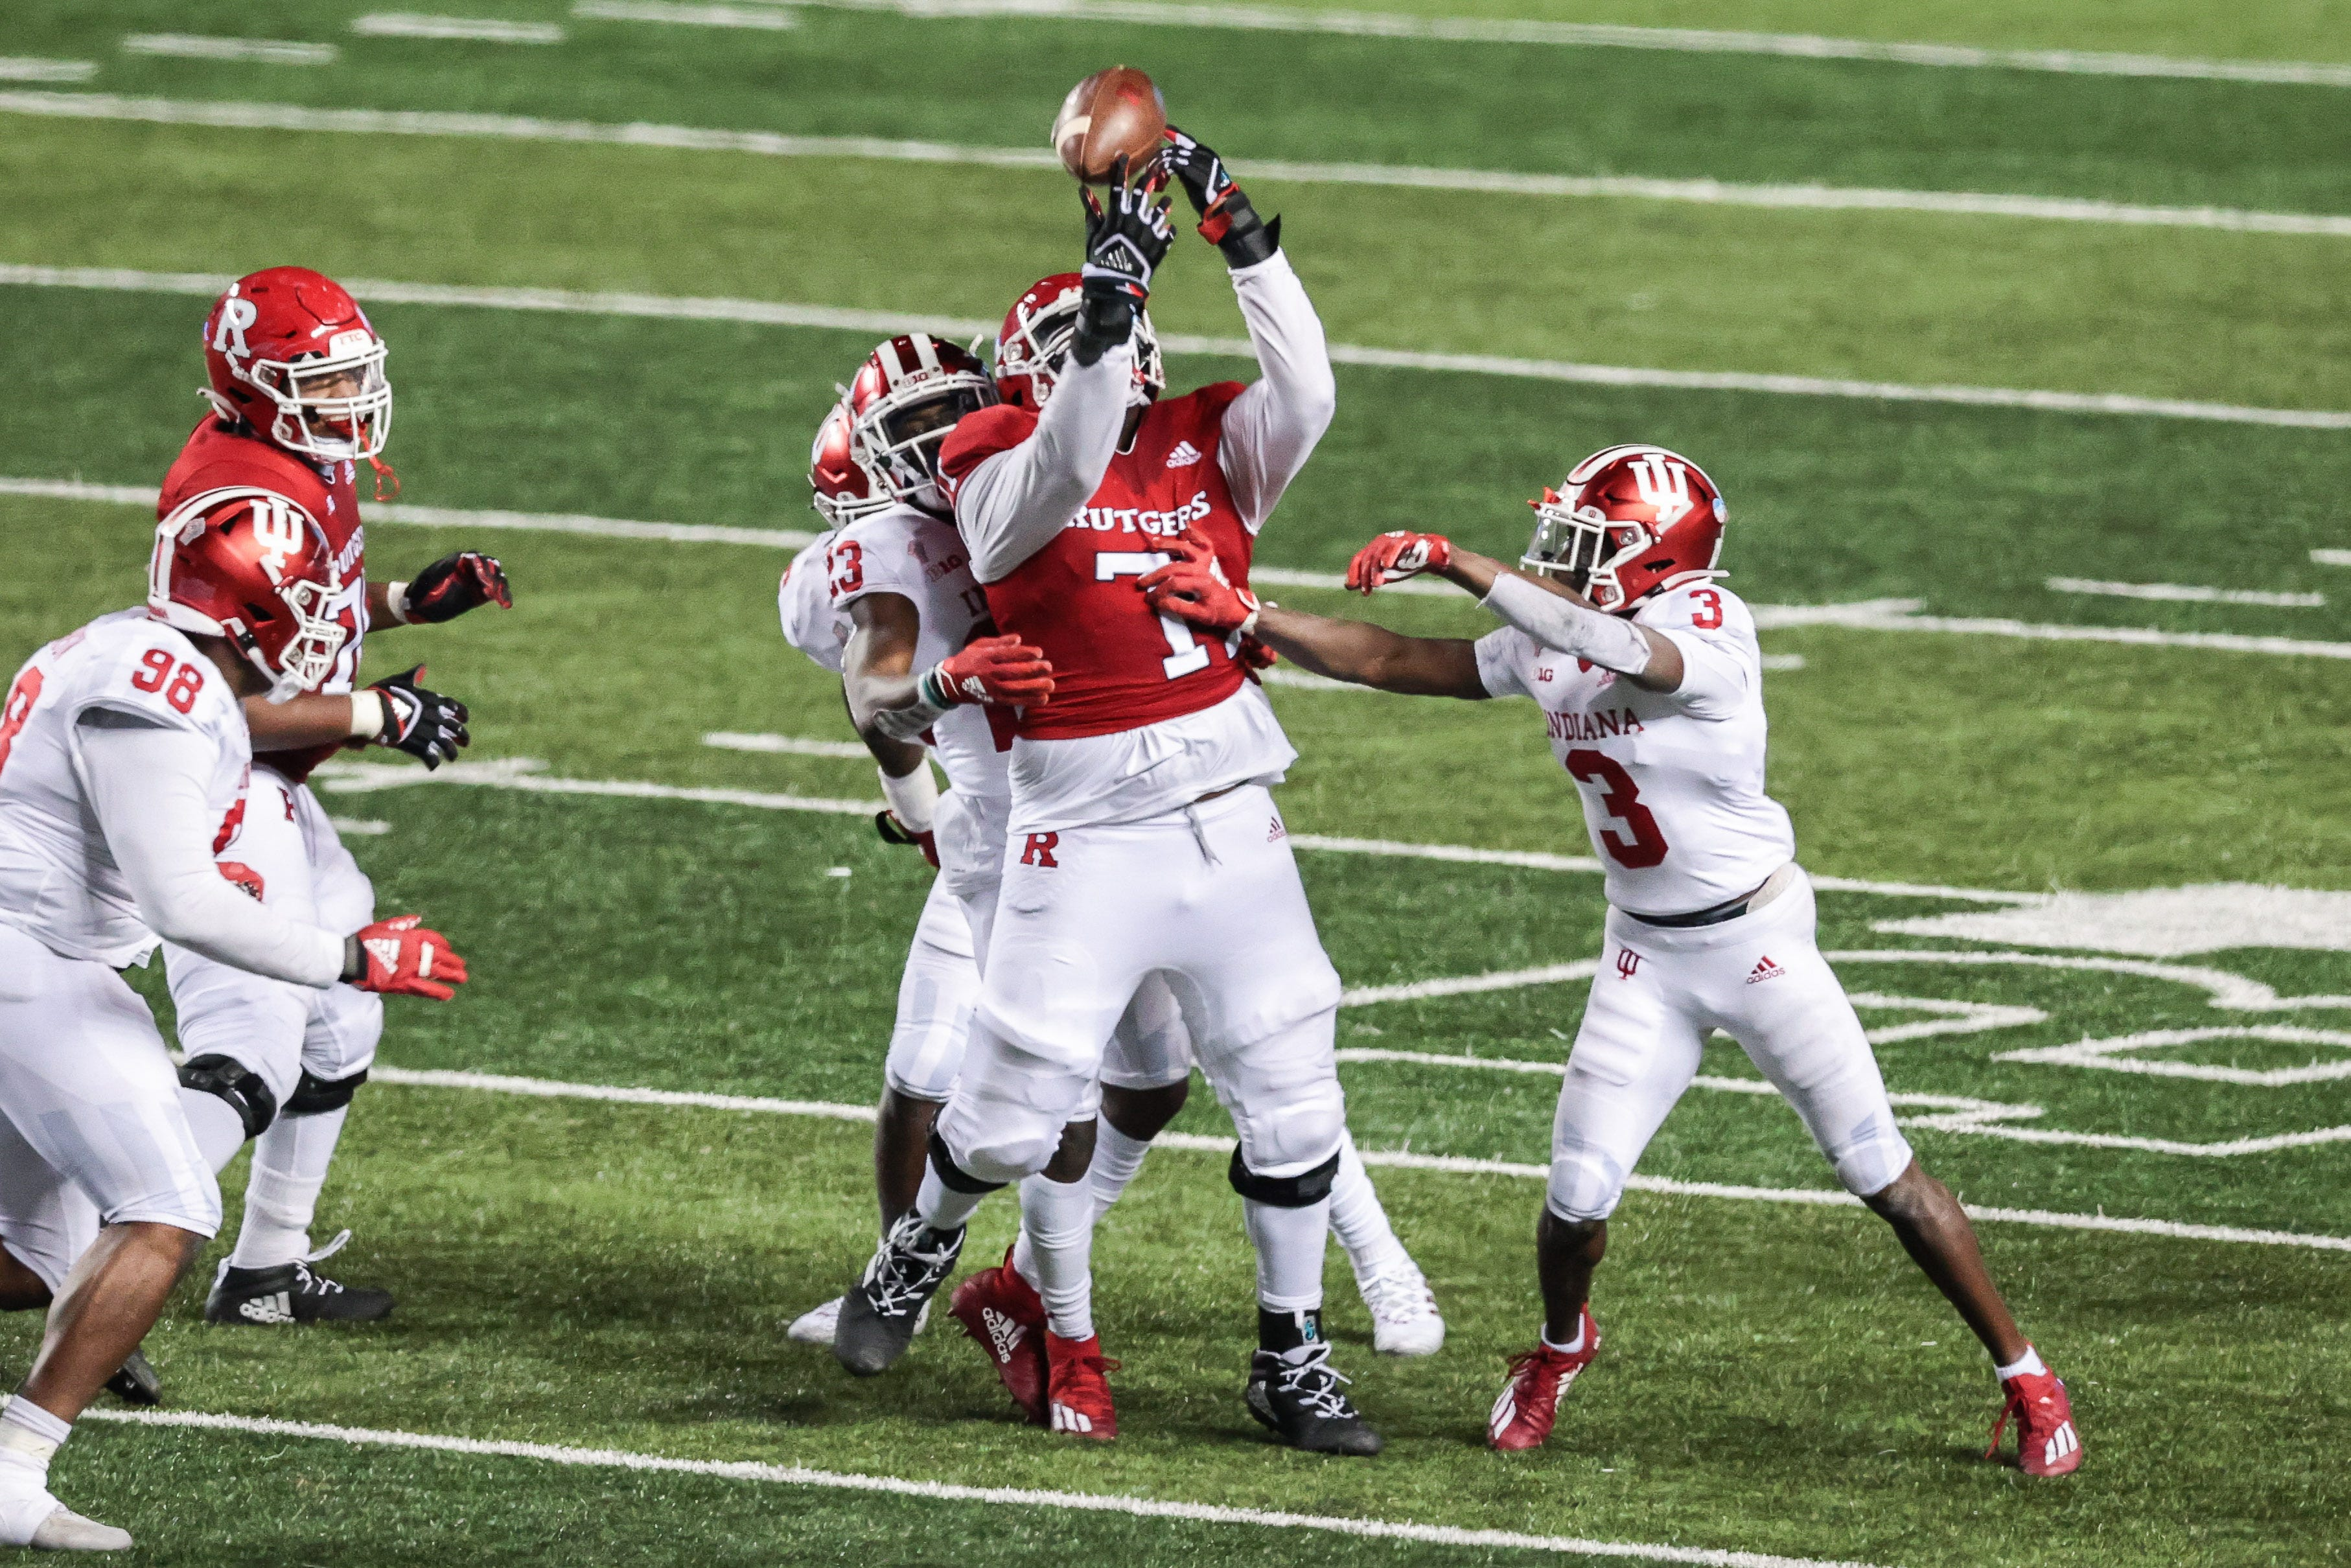 Rutgers nearly pulled off one of the craziest touchdowns in college football history